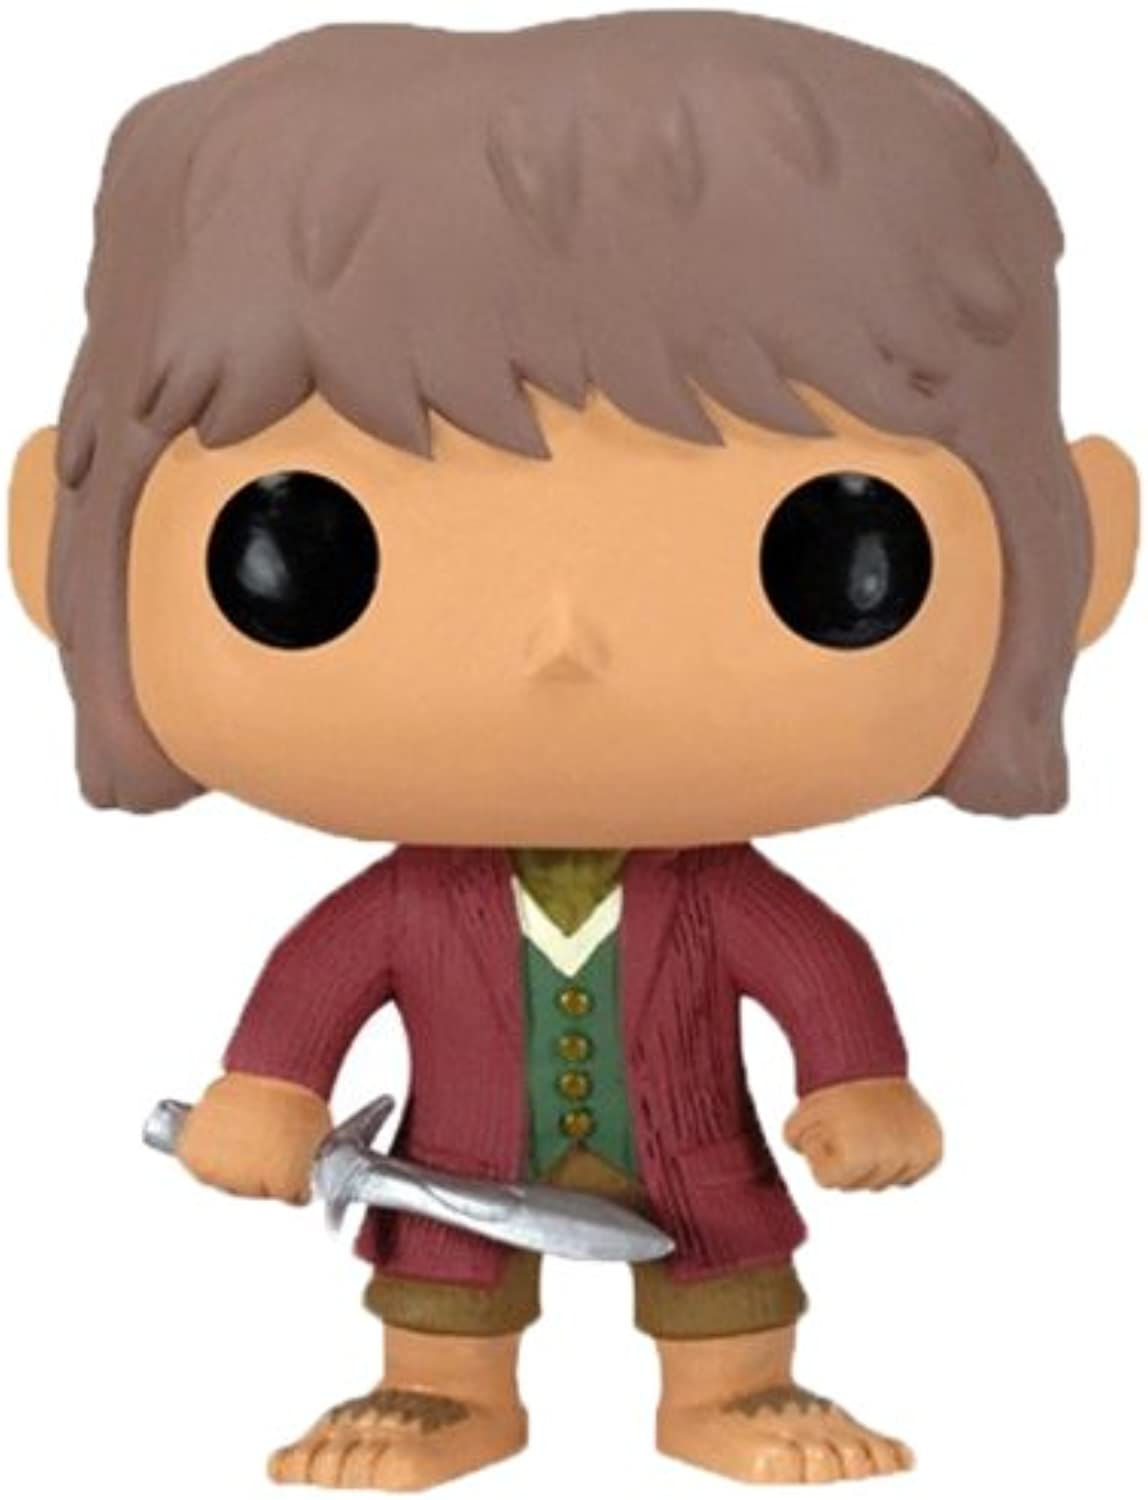 [UK-Import]Funko The Hobbit Bilbo Baggins Pop  Vinyl Figure